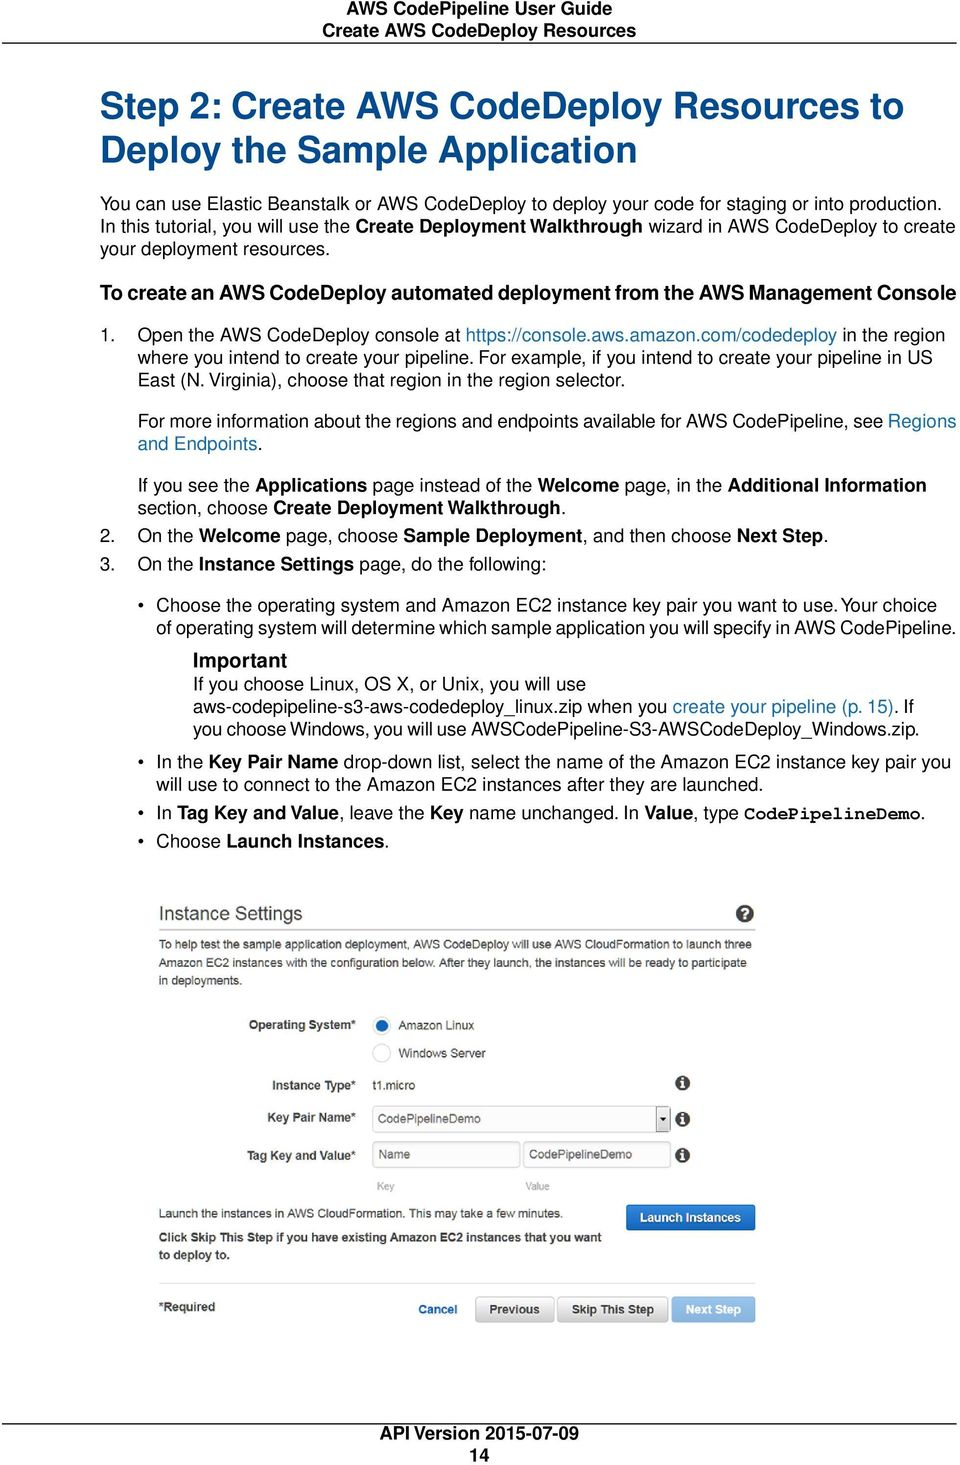 To create an AWS CodeDeploy automated deployment from the AWS Management Console 1. Open the AWS CodeDeploy console at https://console.aws.amazon.